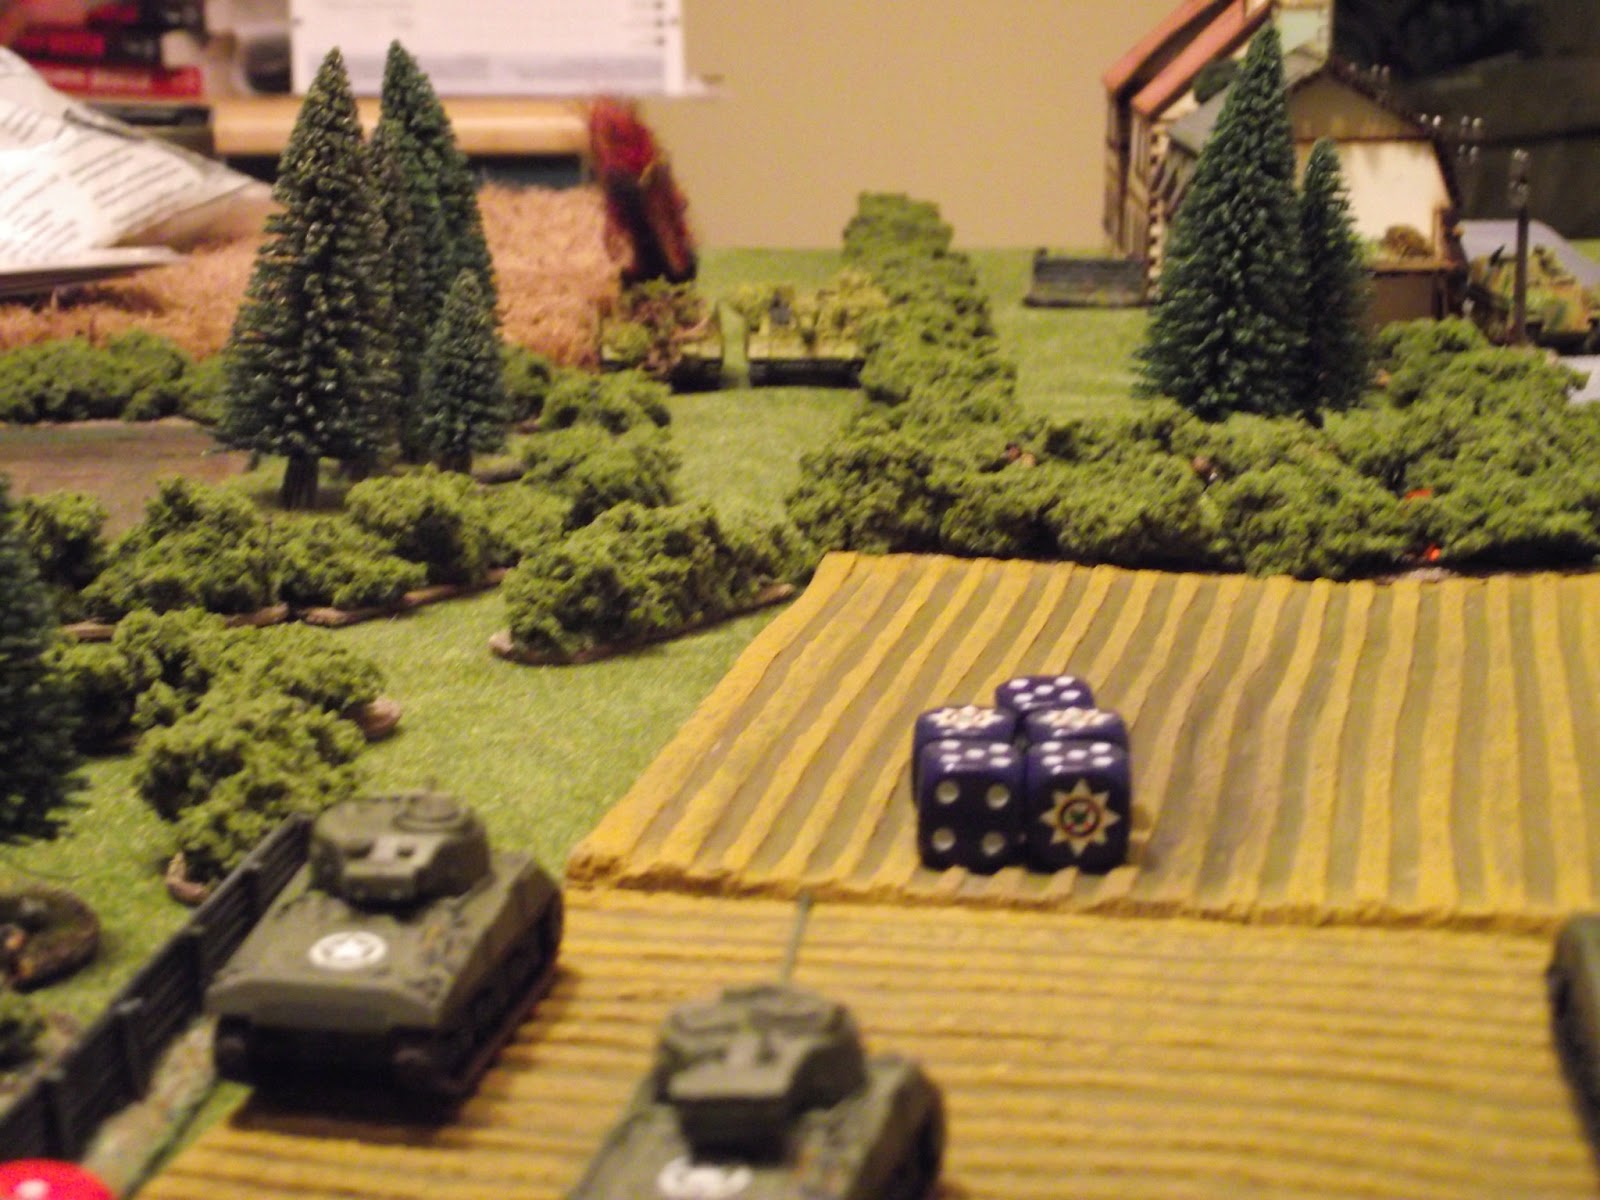 The StuG platoon manages to hit the Sherman on the right twice, but only managed to do some minor engine damage. The return fire from that same Sherman blew up the StuG on the left with a 5-0 score. The Firefly managed to knock out the 10.5cm StuG's gun out and destroy its optics, while the other Sherman (off screen) damaged the StuG's engine. A VERY good round of shooting for me.